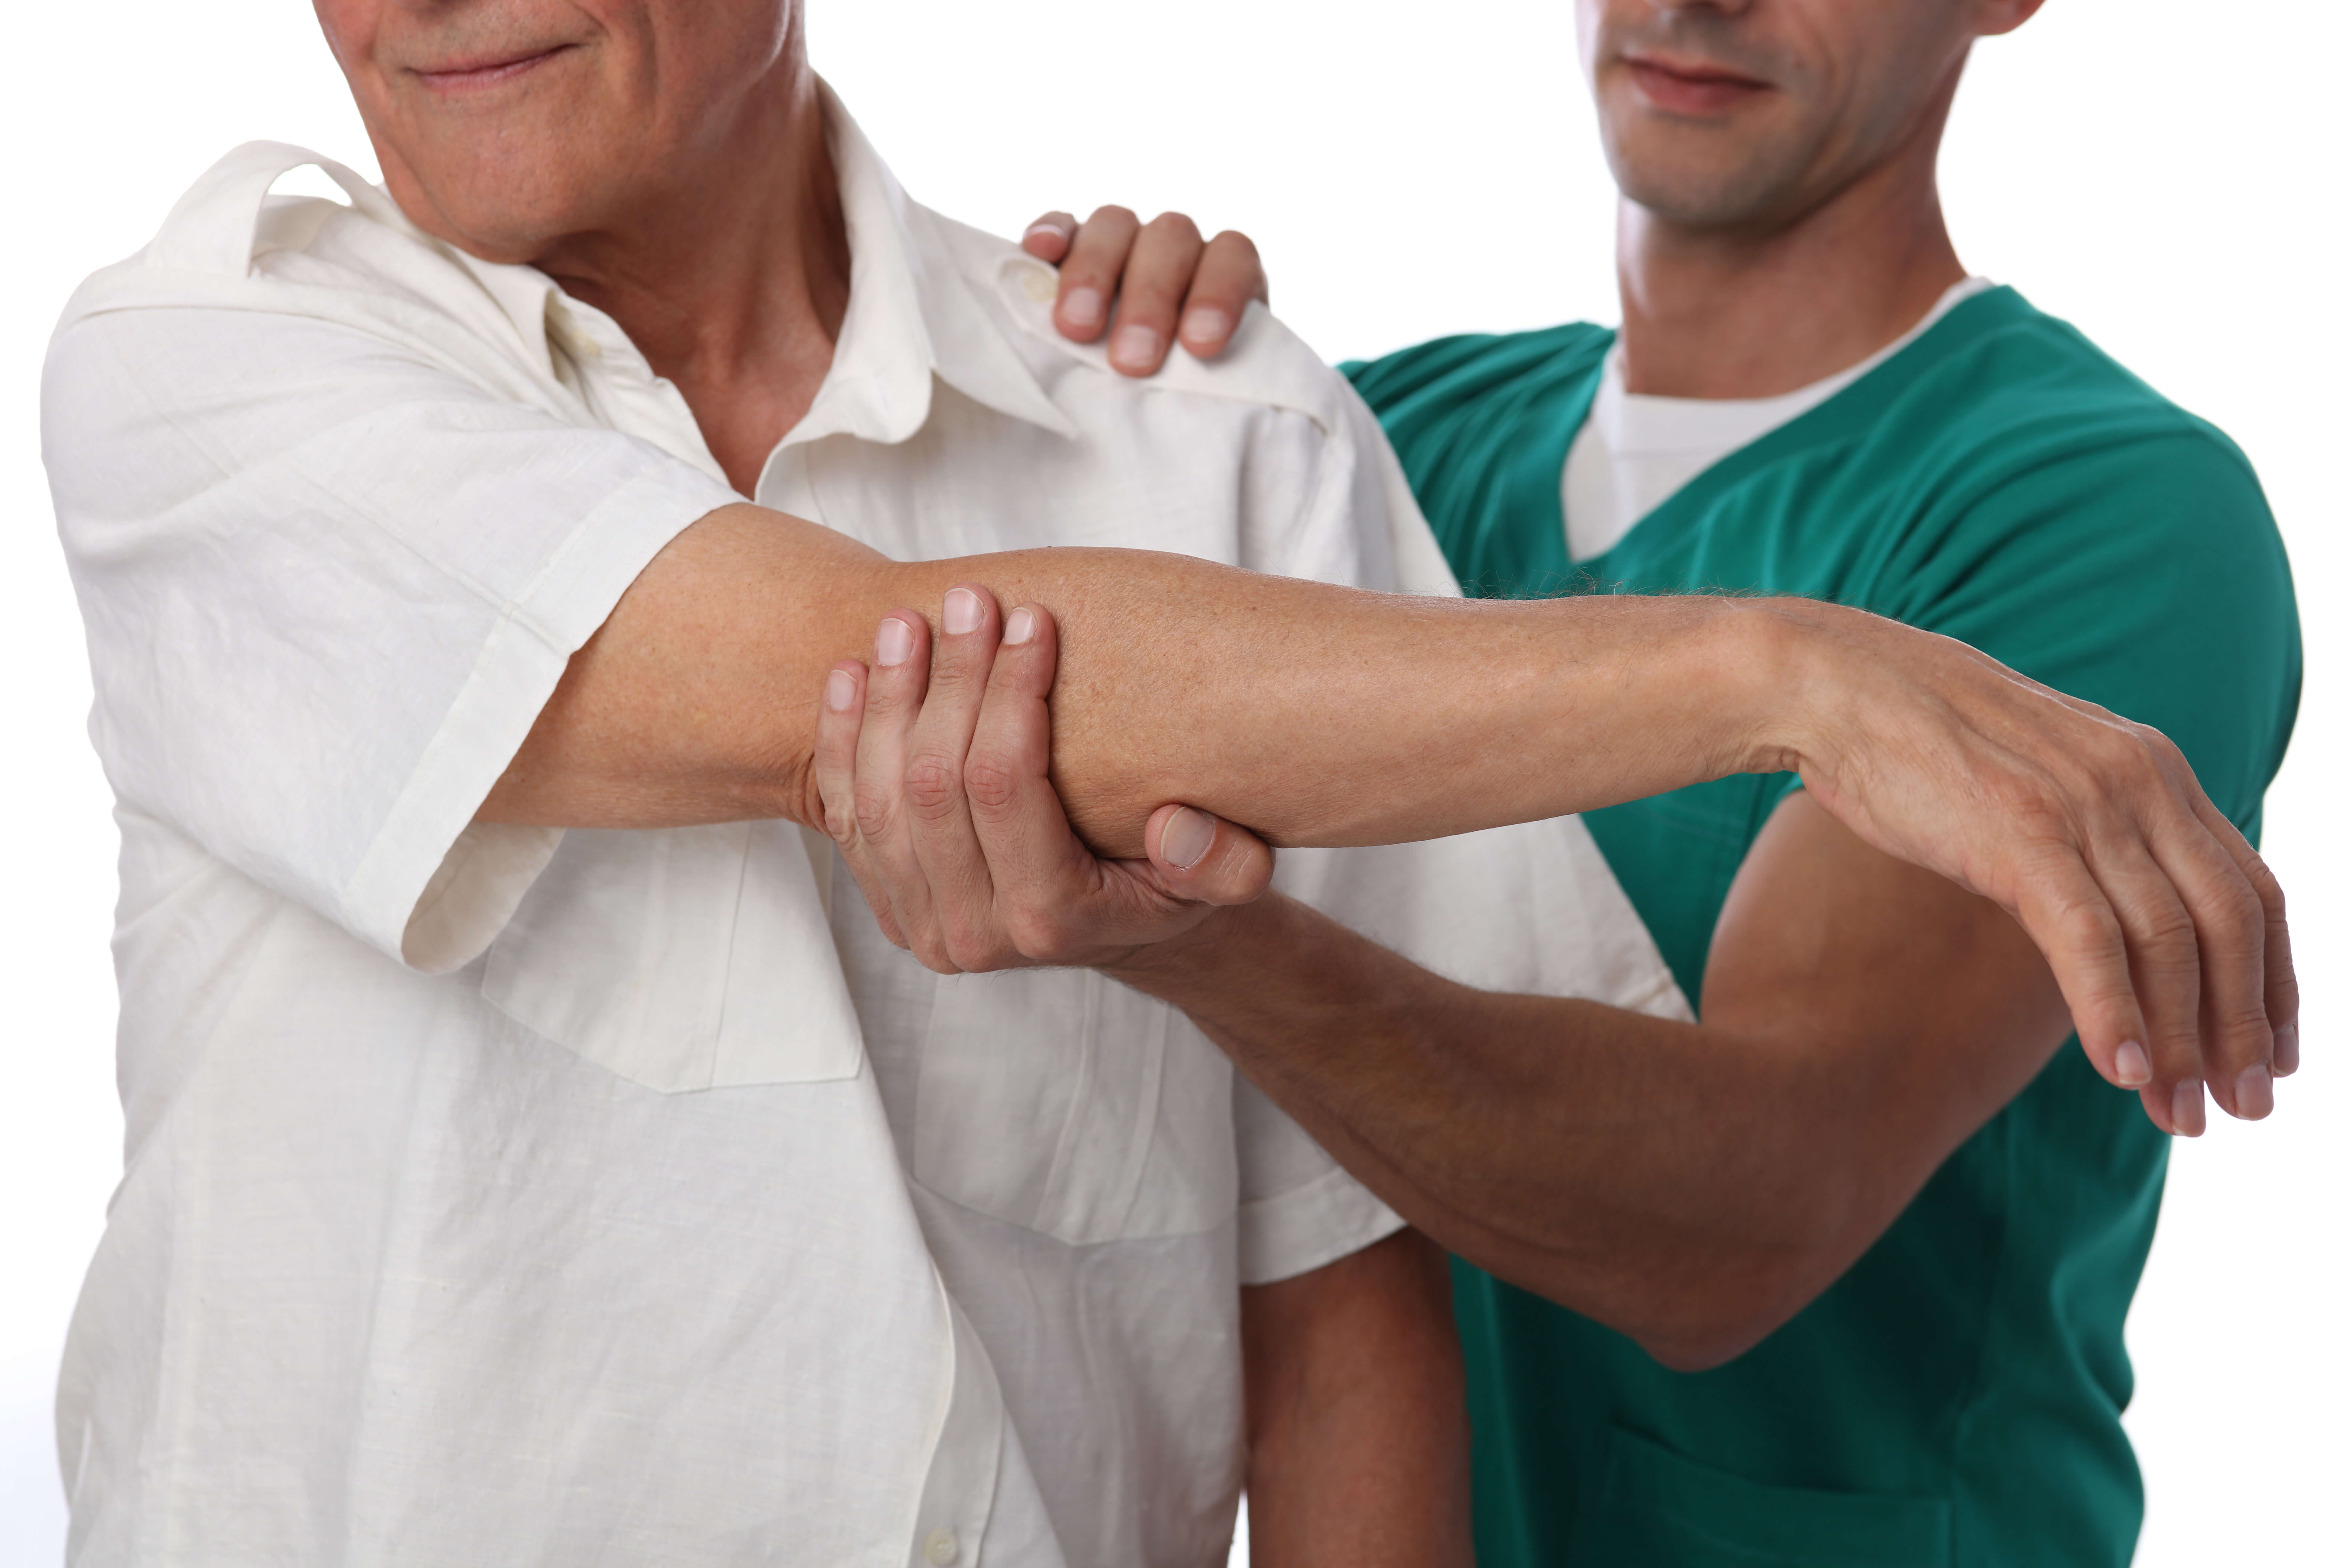 These treatment options can help reduce your shoulder pain